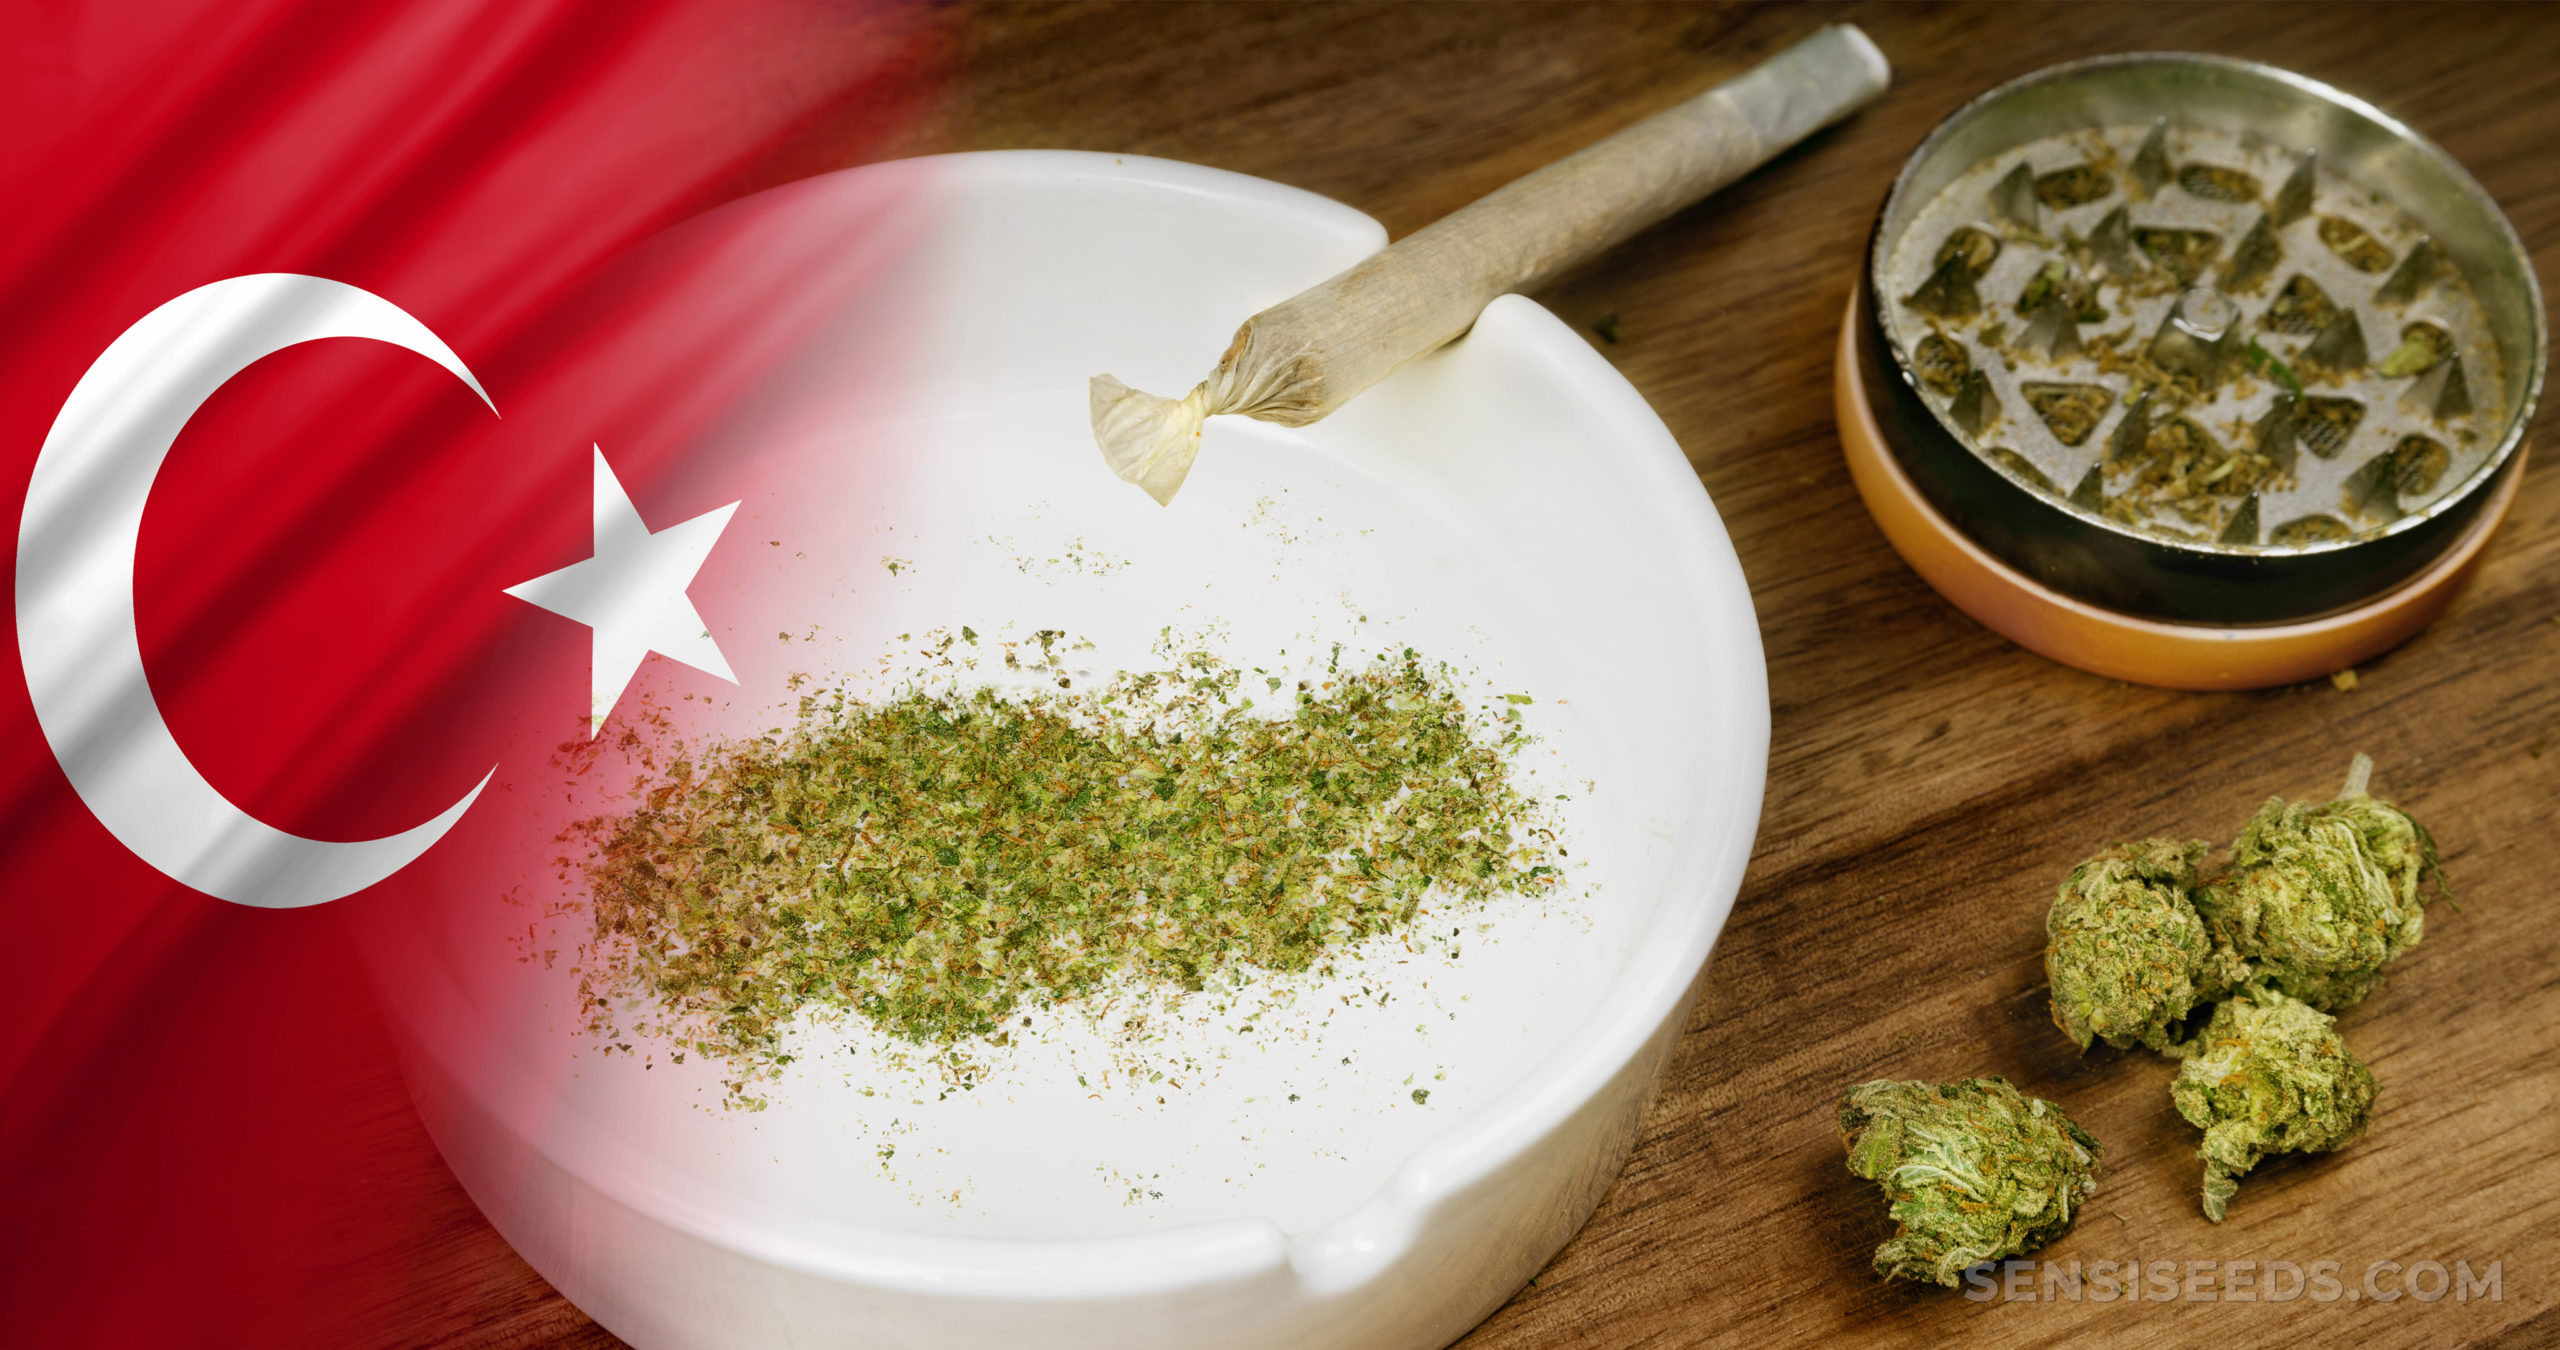 The Turkish flag and cannabis buds and a joint on a table